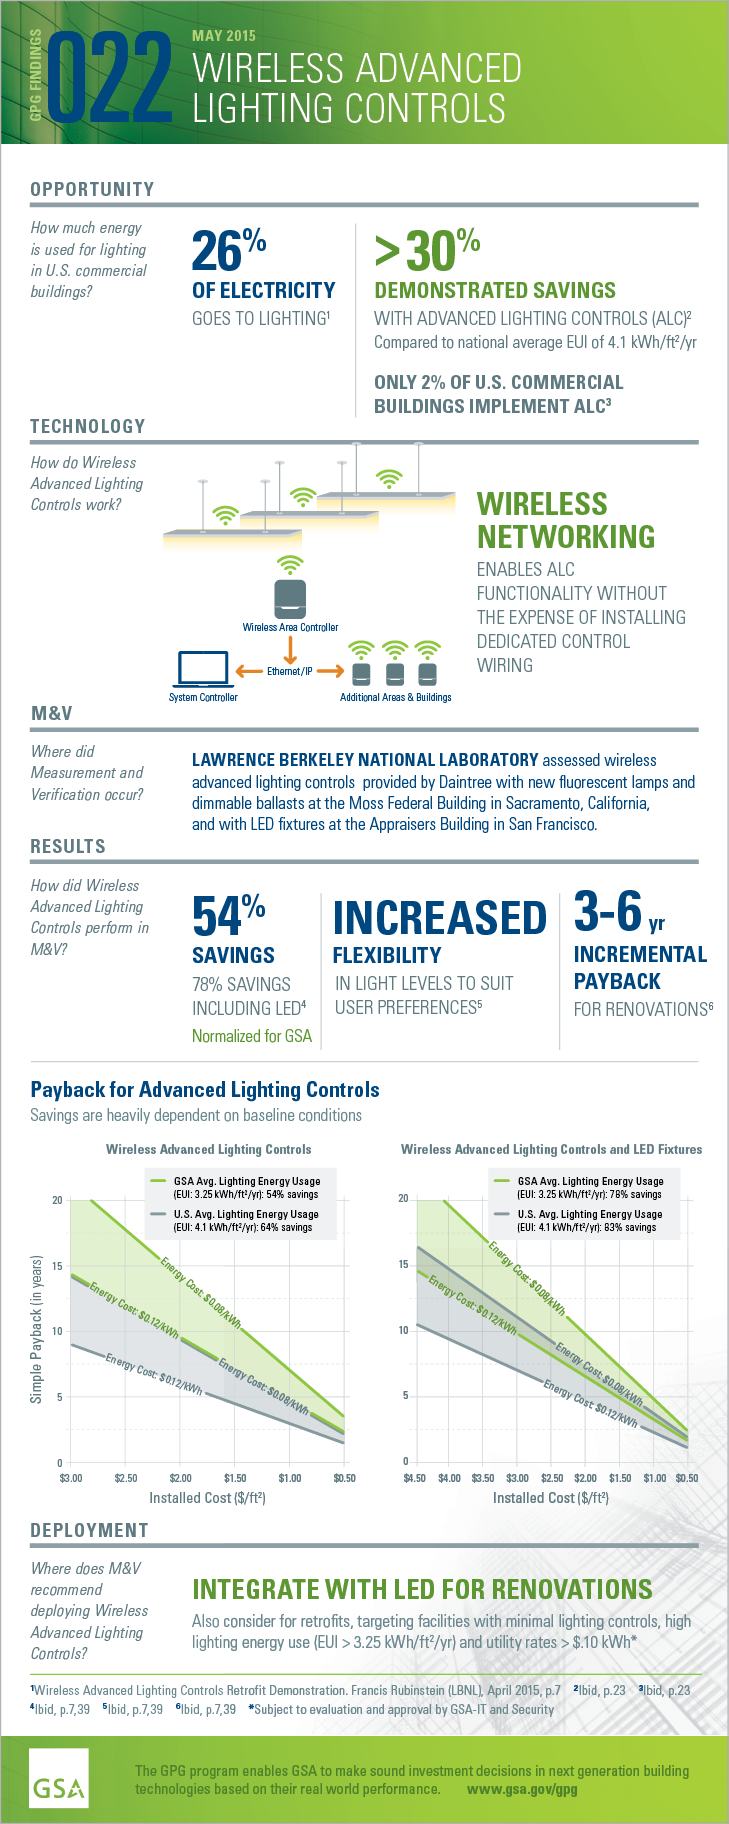 GPG Findings 022, May 2015, Wireless Advanced Lighting Controls. Opportunity: How much energy is used for lighting in U.S. commercial buildings? 26% of electricity goes to lighting(Wireless Advanced Lighting Controls Retrofit Demonstration. Francis Rubinstein (LBNL), April 2015, p.7).>30% DEMONSTRATED SAVINGS WITH ADVANCED LIGHTING CONTROLS (ALC) (Ibid, p23) Compared to national average EUI of 4.1 kWh/ft2/yr ONLY 2% OF U.S. COMMERCIAL BUILDINGS IMPLEMENT ALC (Ibid, p23) Technology: How do Wireless Advanced Lighting Controls work? Wireless Networking enables ALC functionality without the expense of installing dedicated control wiring. Measurement and Verification. Where did M and V occur? LAWRENCE BERKELEY NATIONAL LABORATORY assessed wireless advanced lighting controls with new fluorescent lamps and dimmable ballasts at the Moss Federal Building in Sacramento, California, and with LED fixtures at the Appraisers Building in San Francisco.Results: How did Wireless Advanced Controls perform in M and V? 54% SAVINGS 78% SAVINGS INCLUDING LED (Ibid, p.7,39) Normalized for GSA.INCREASED FLEXIBILITY IN LIGHT LEVELS TO SUIT USER PREFERENCES (Ibid, p7,39). 3-6 yr INCREMENTAL PAYBACK FOR RENOVATIONS (Ibid, p7,39). Payback:  Incremental payback between three and six years. For locations with GSA's average energyuse intensity (EUI) of 3.25 kWh/ft2, installed costs for retrofitting with wireless advanced lighting controls and LED must be $3.00/ft2 at an electricity rate of $0.12/kWh for a 10-year payback.Deployment: Where does M and V recommend deploying Wireless Advanced Lighting Controls? INTEGRATE WITH LED FOR RENOVATIONS. Also consider for retrofits, targeting facilities with minimal lighting controls, high lighting energy use (EUI > 3.25 kWh/ft2) and utility rates > $.10 kWh (Subject to evaluation and approval by GSA-IT and Security)